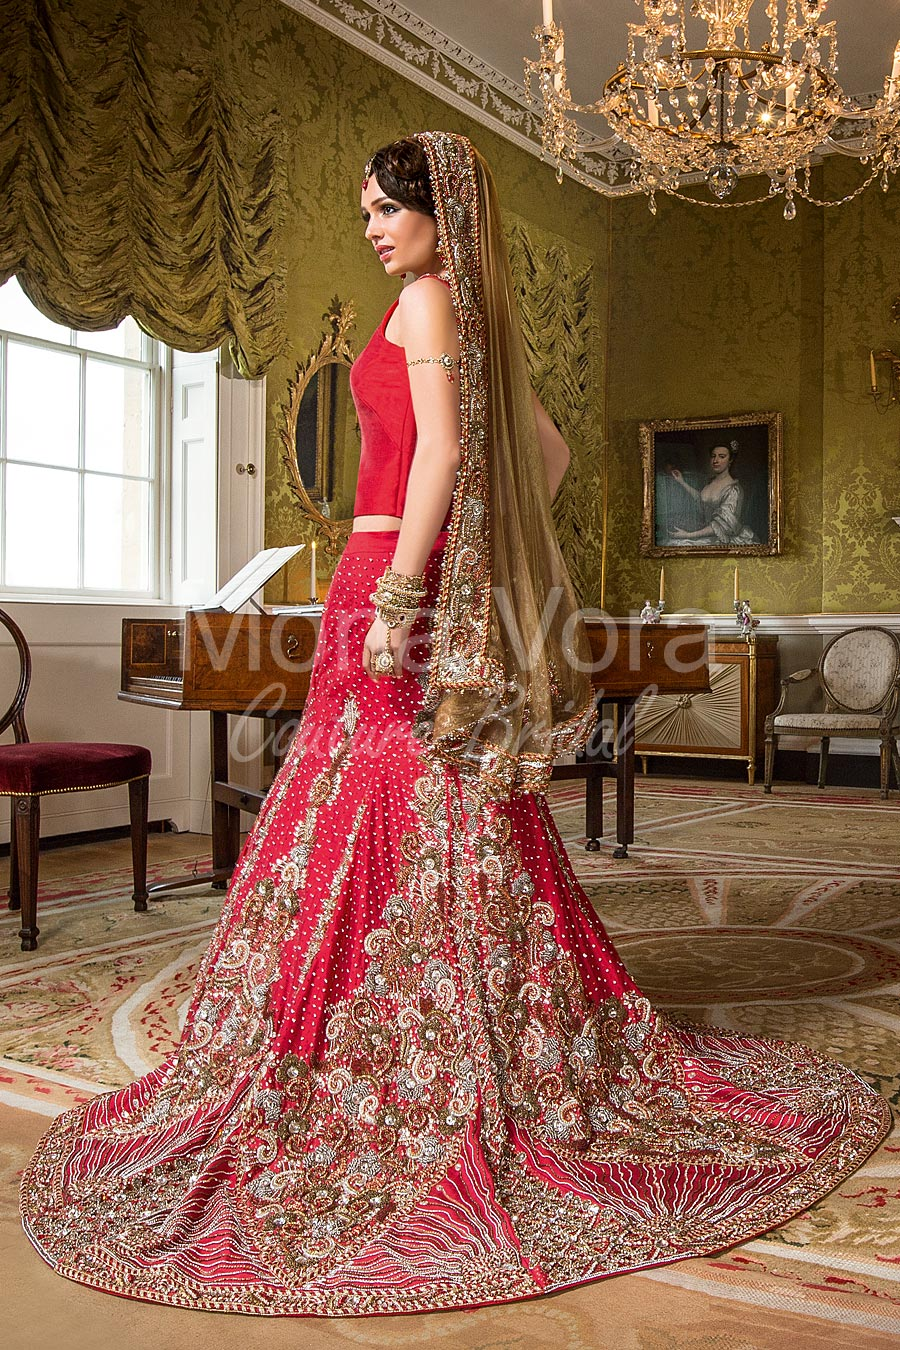 Indian Wedding Bride Dresses